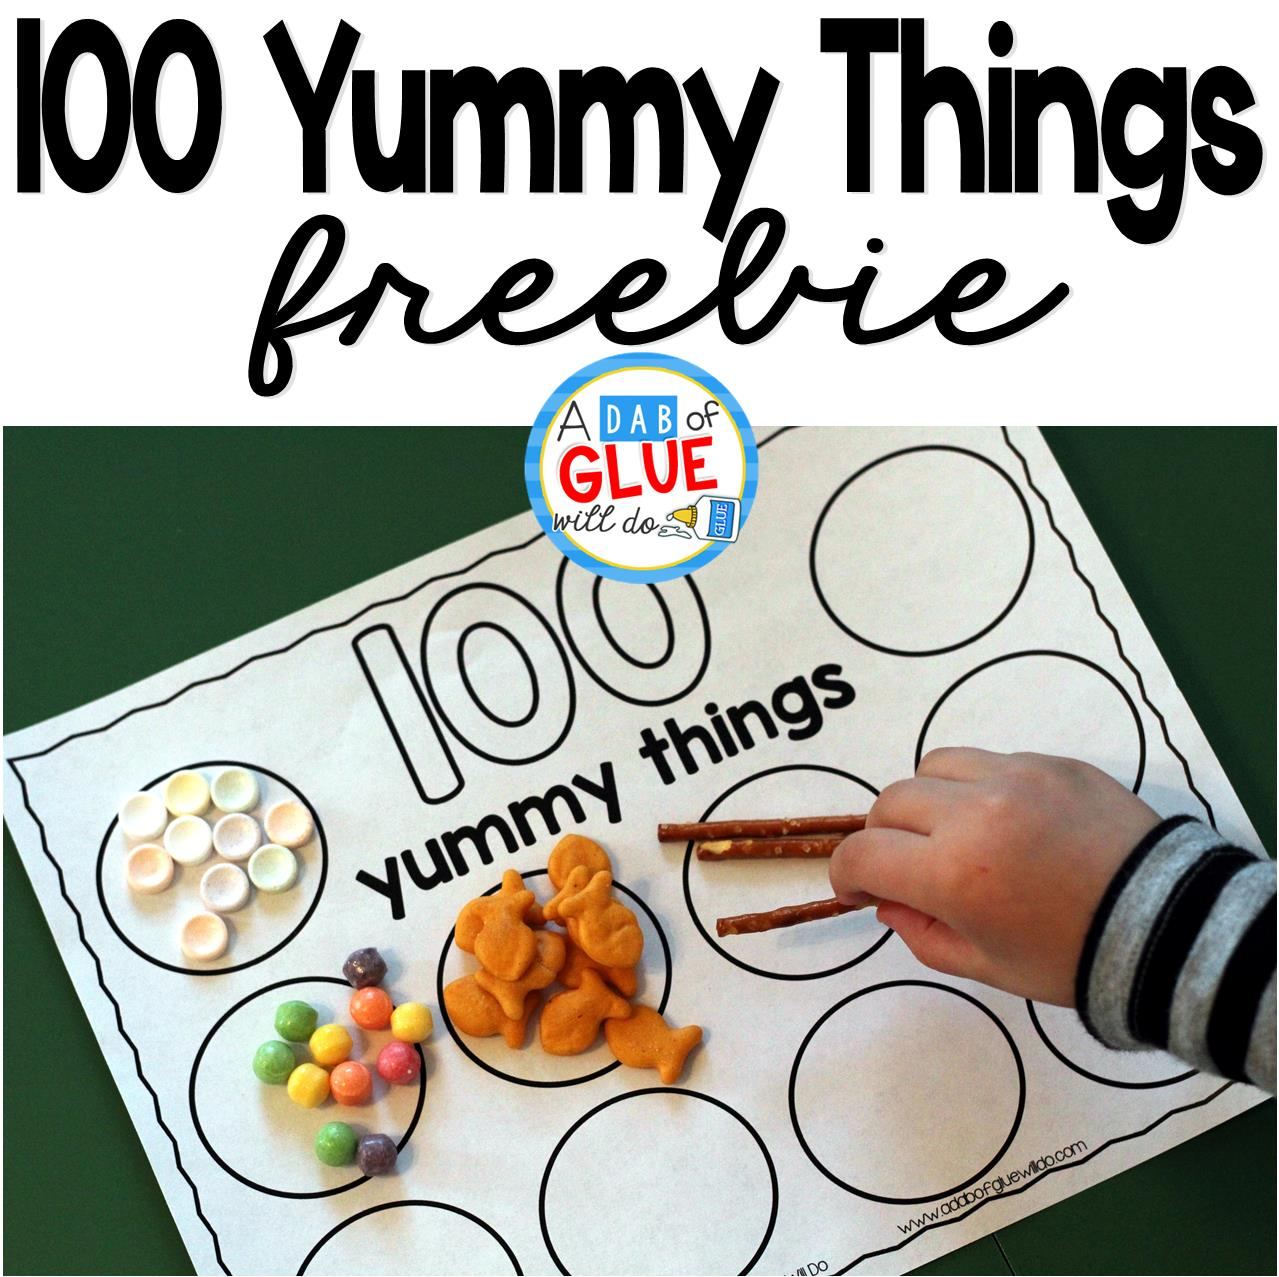 100 Yummy Things is the perfect addition to your 100th day of school celebrations. This free printable will encourage your students to practice counting to 100. It's perfect for preschool, kindergarten, and first grade students.